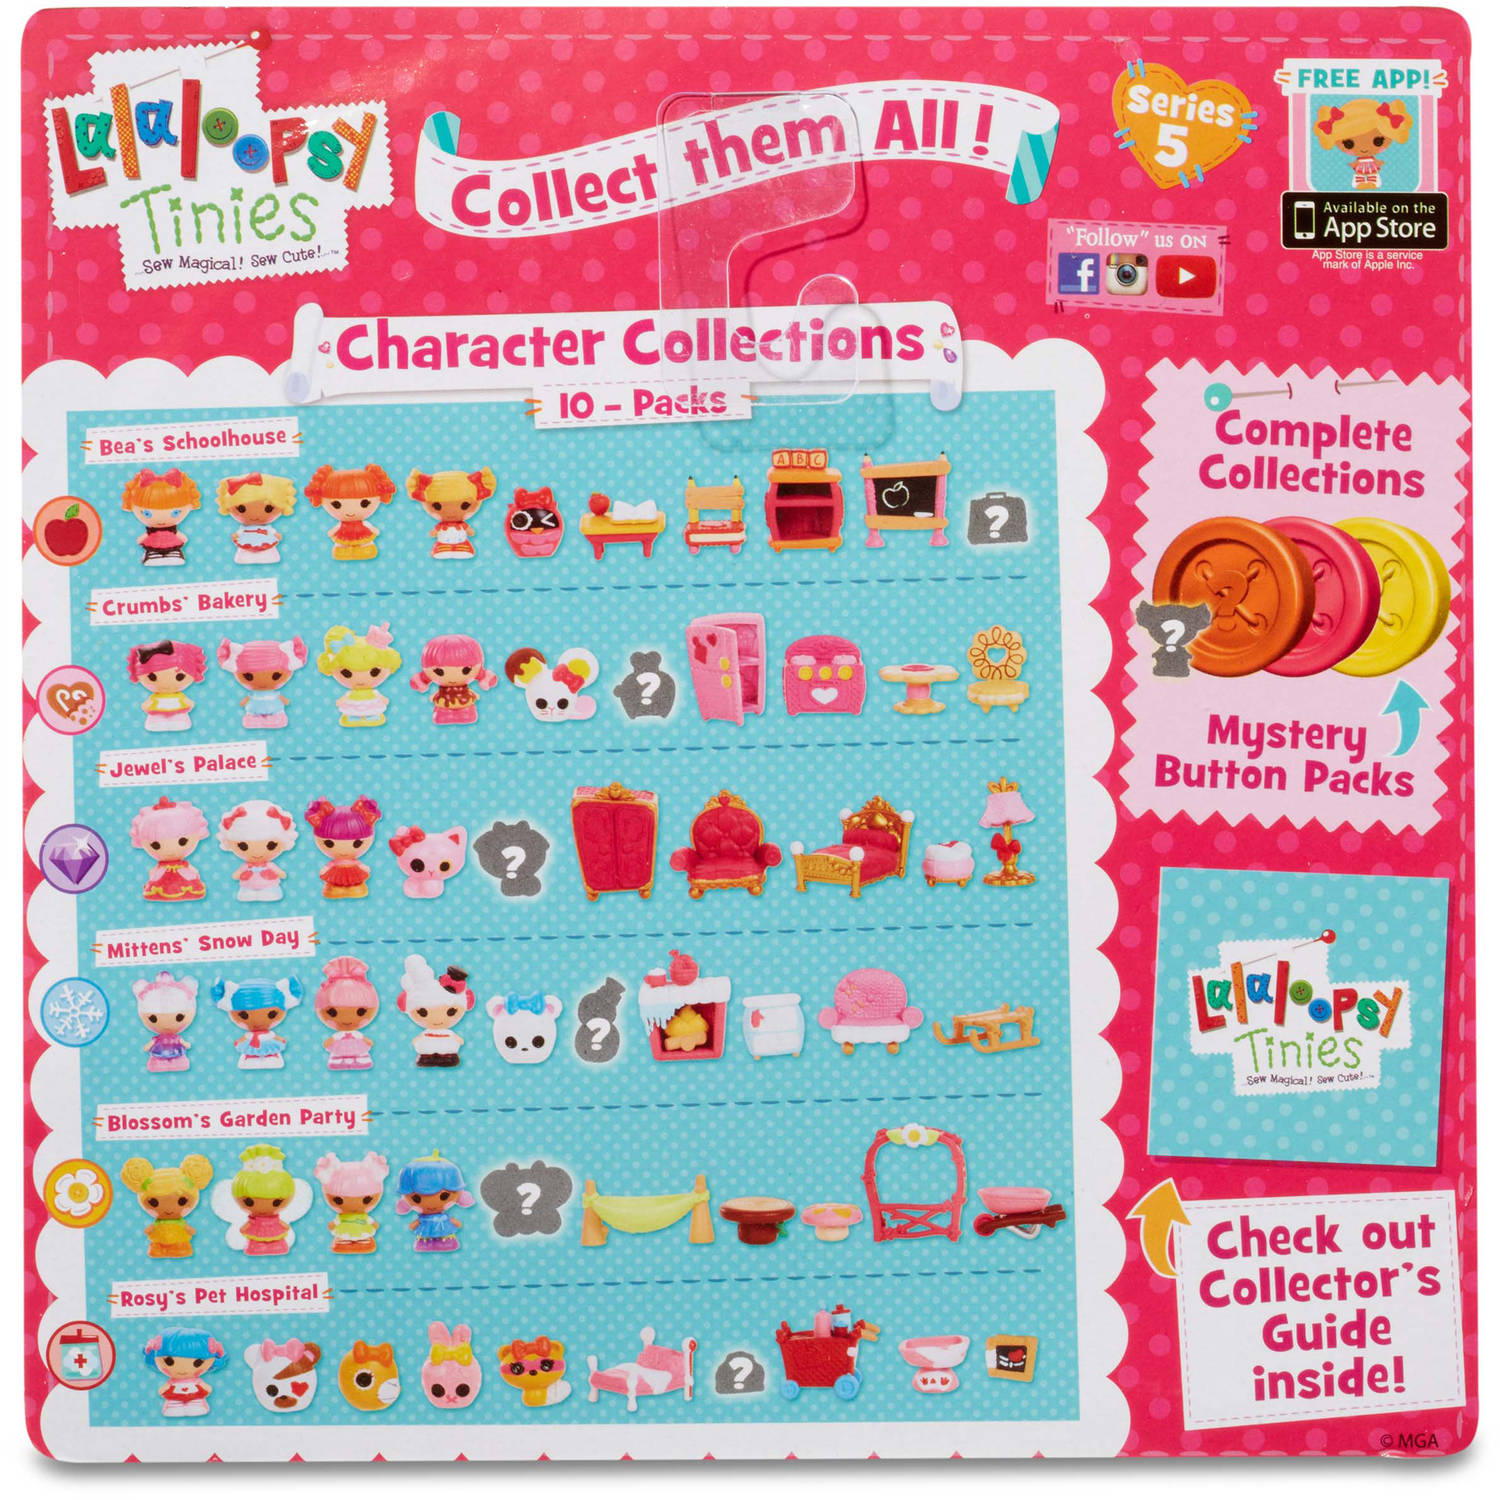 Lalaloopsy Tinies 10 Pack Series 5, Mitten\'s Snow Day - Walmart.com